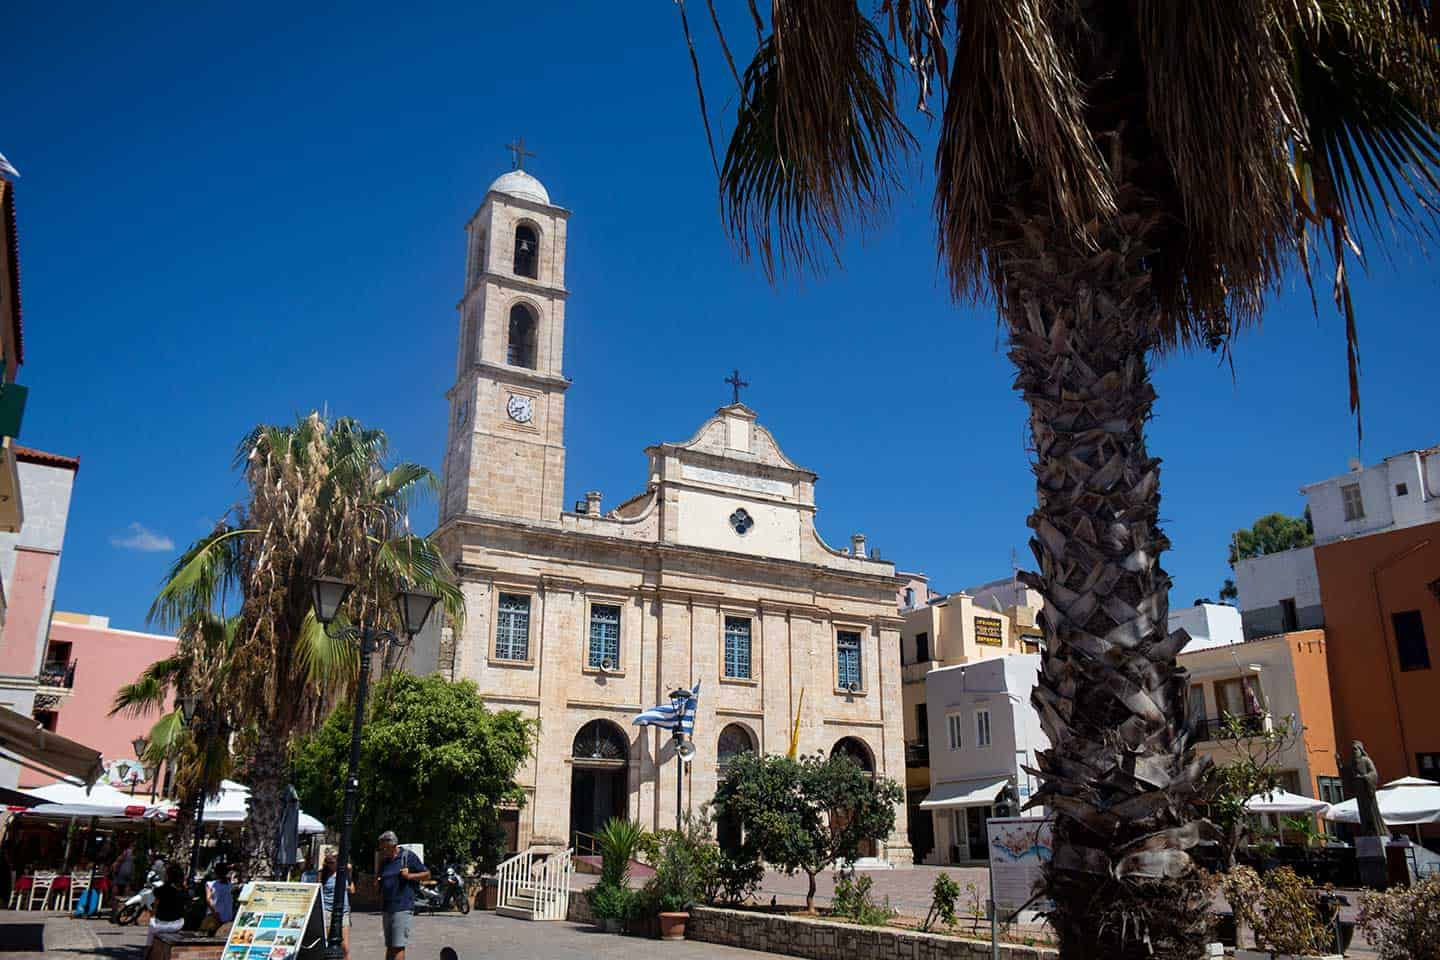 Image of the Greek Orthodox CAthedral in Chania Greece